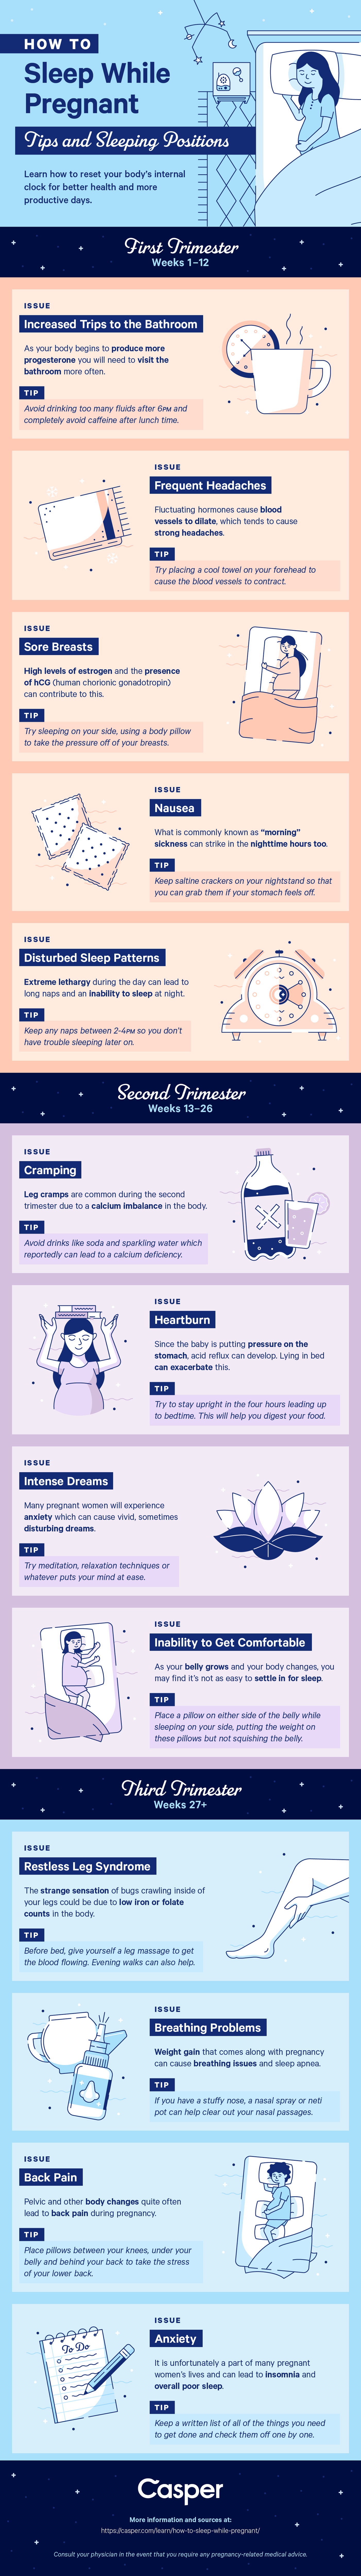 How To Sleep While Pregnant Tips And Sleeping Positions Casper